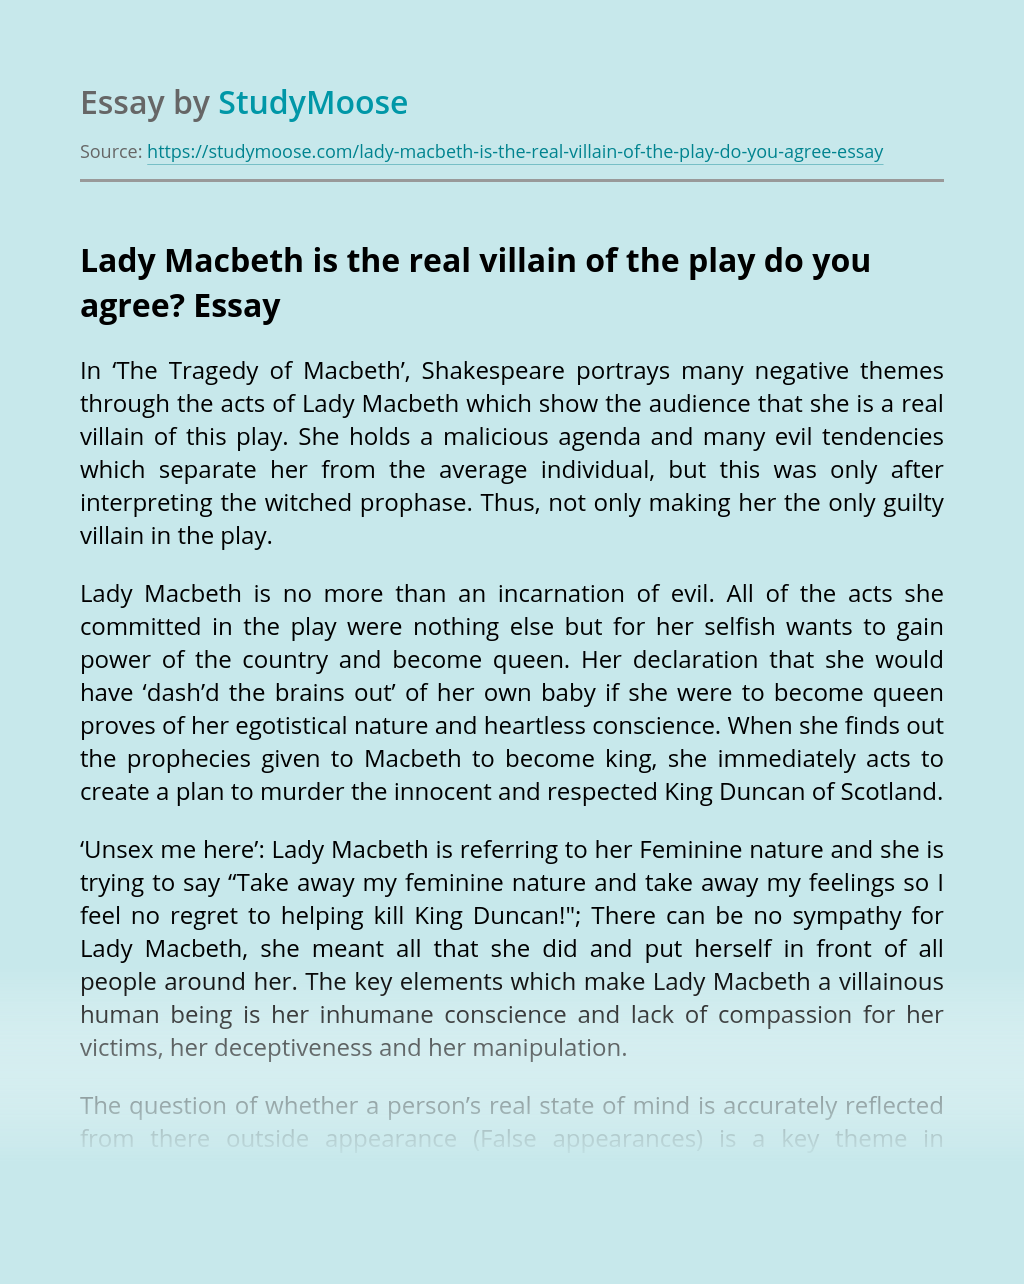 Lady Macbeth is the real villain of the play do you agree?